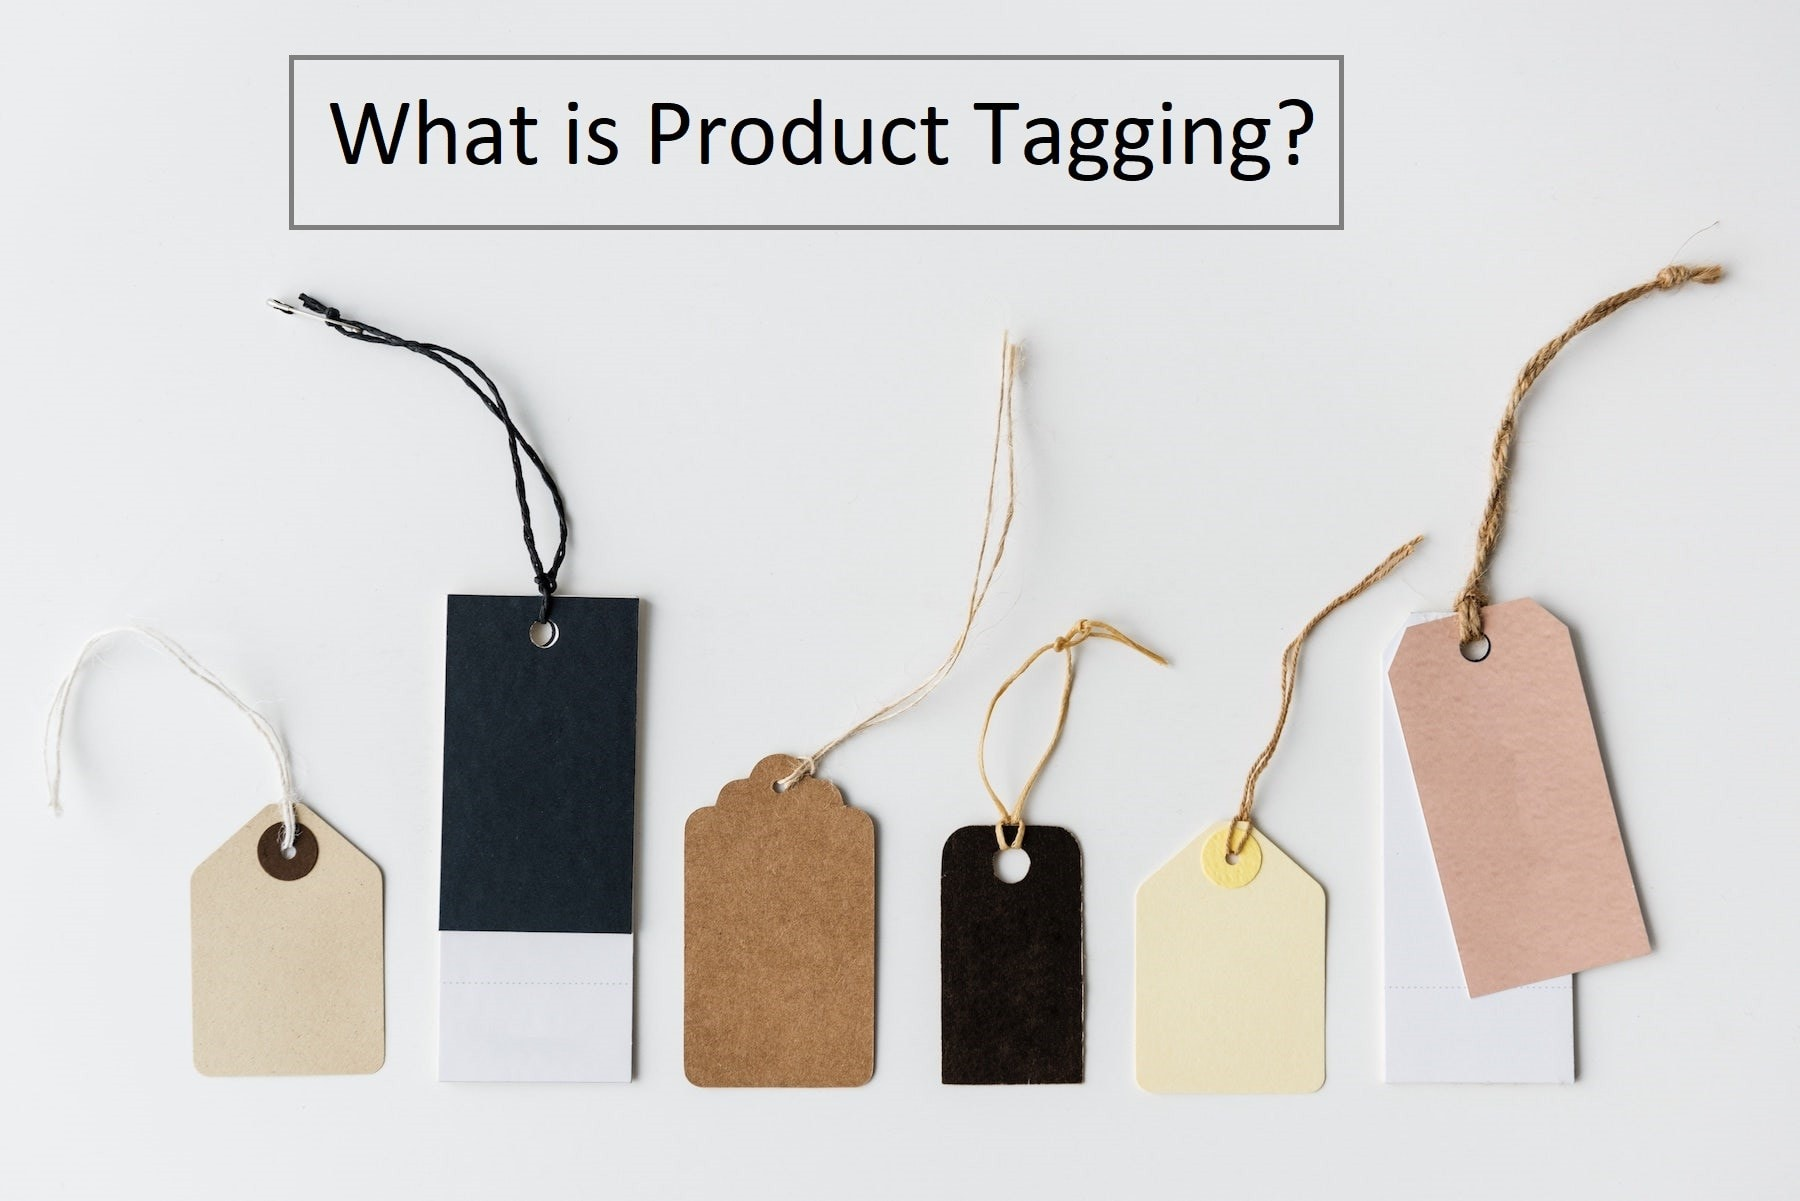 What is Product tagging?